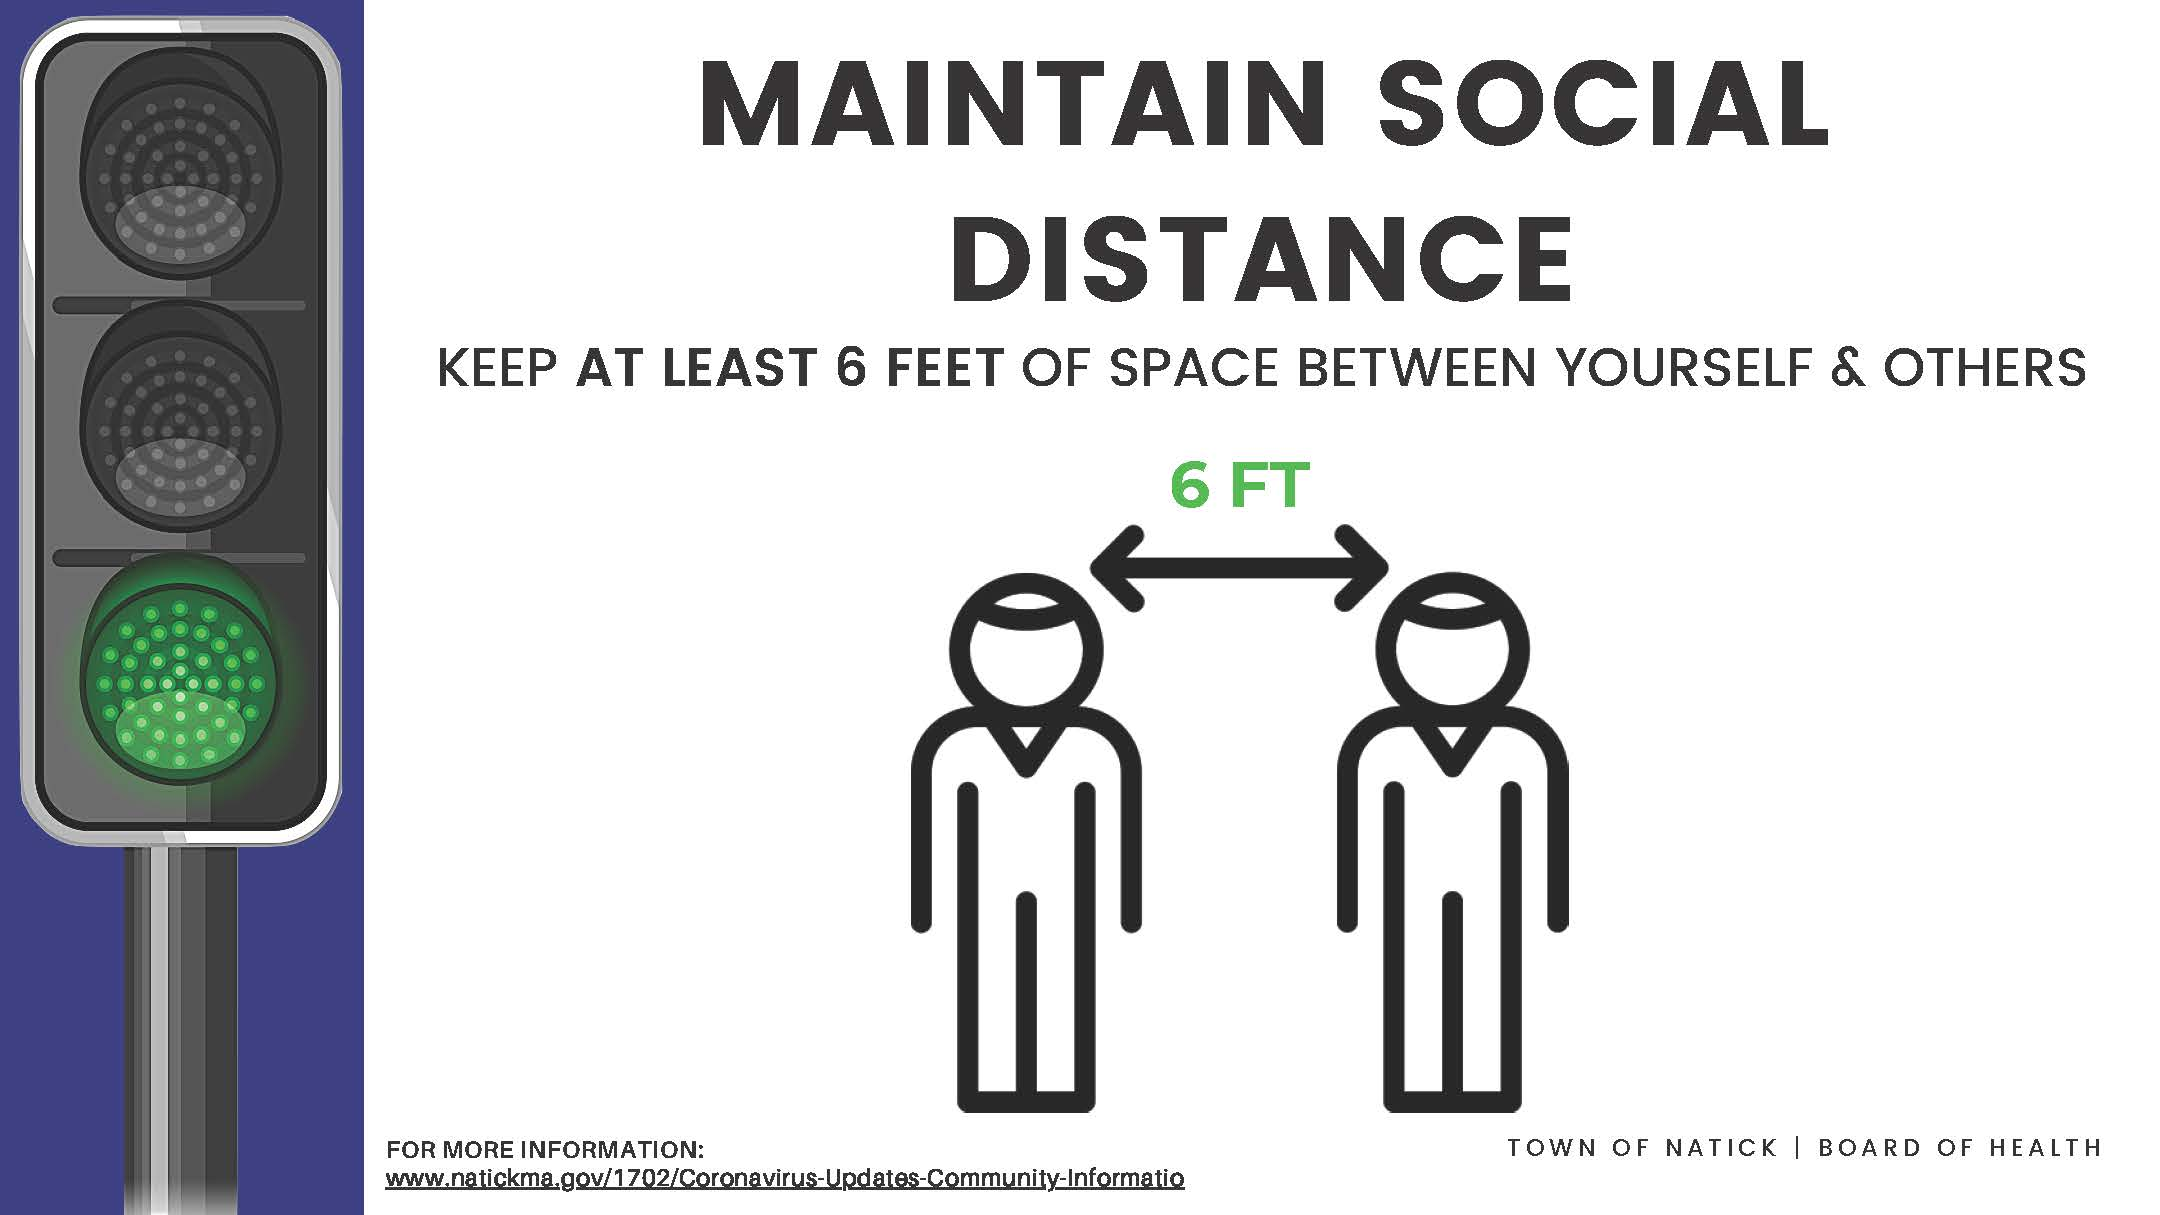 Maintain Social Distance Poster 6 Feet